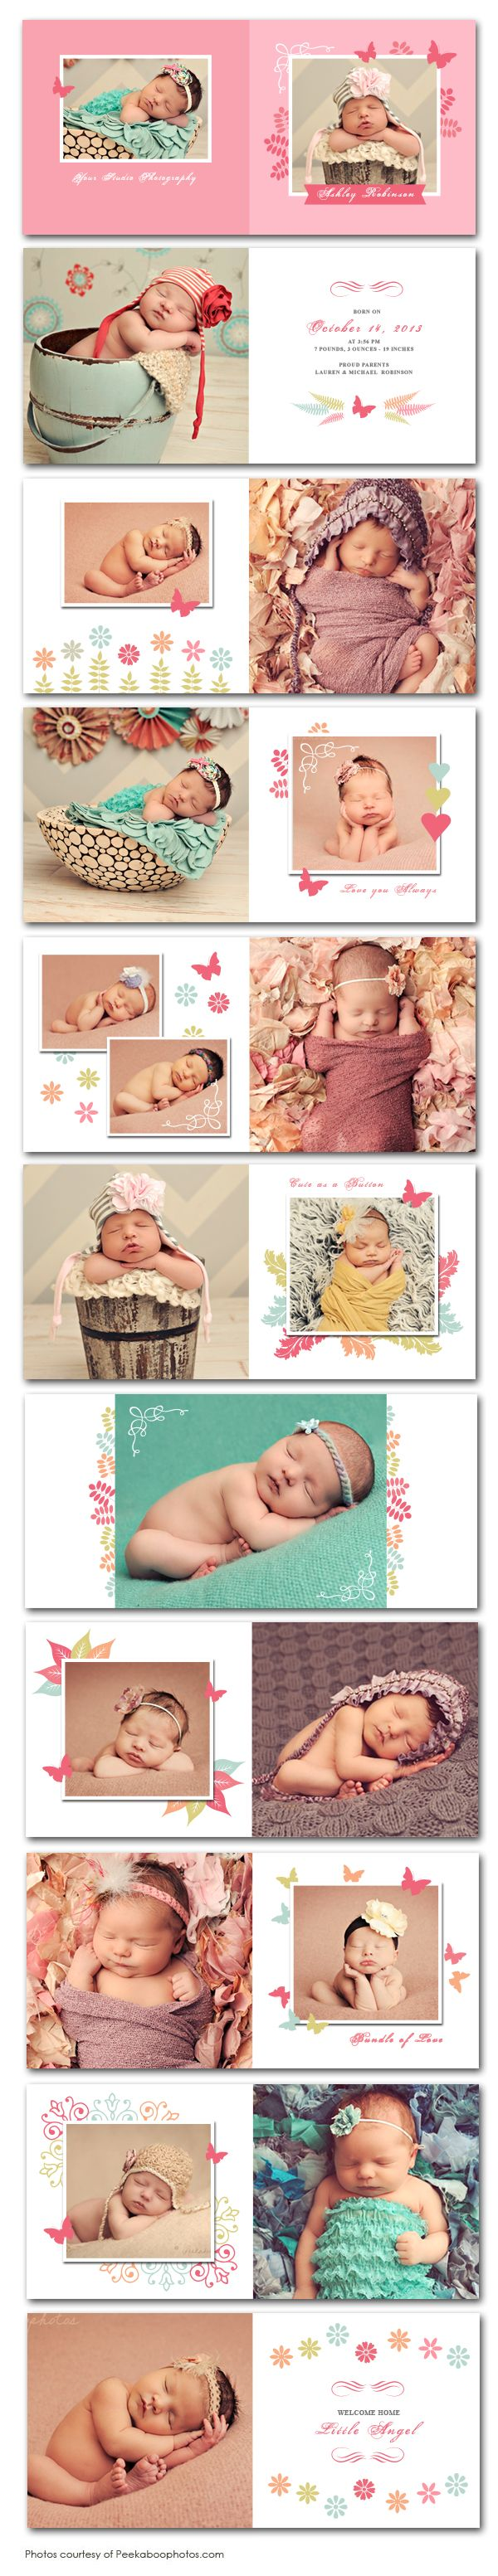 Butterfly Garden Newborn Photo Album Template